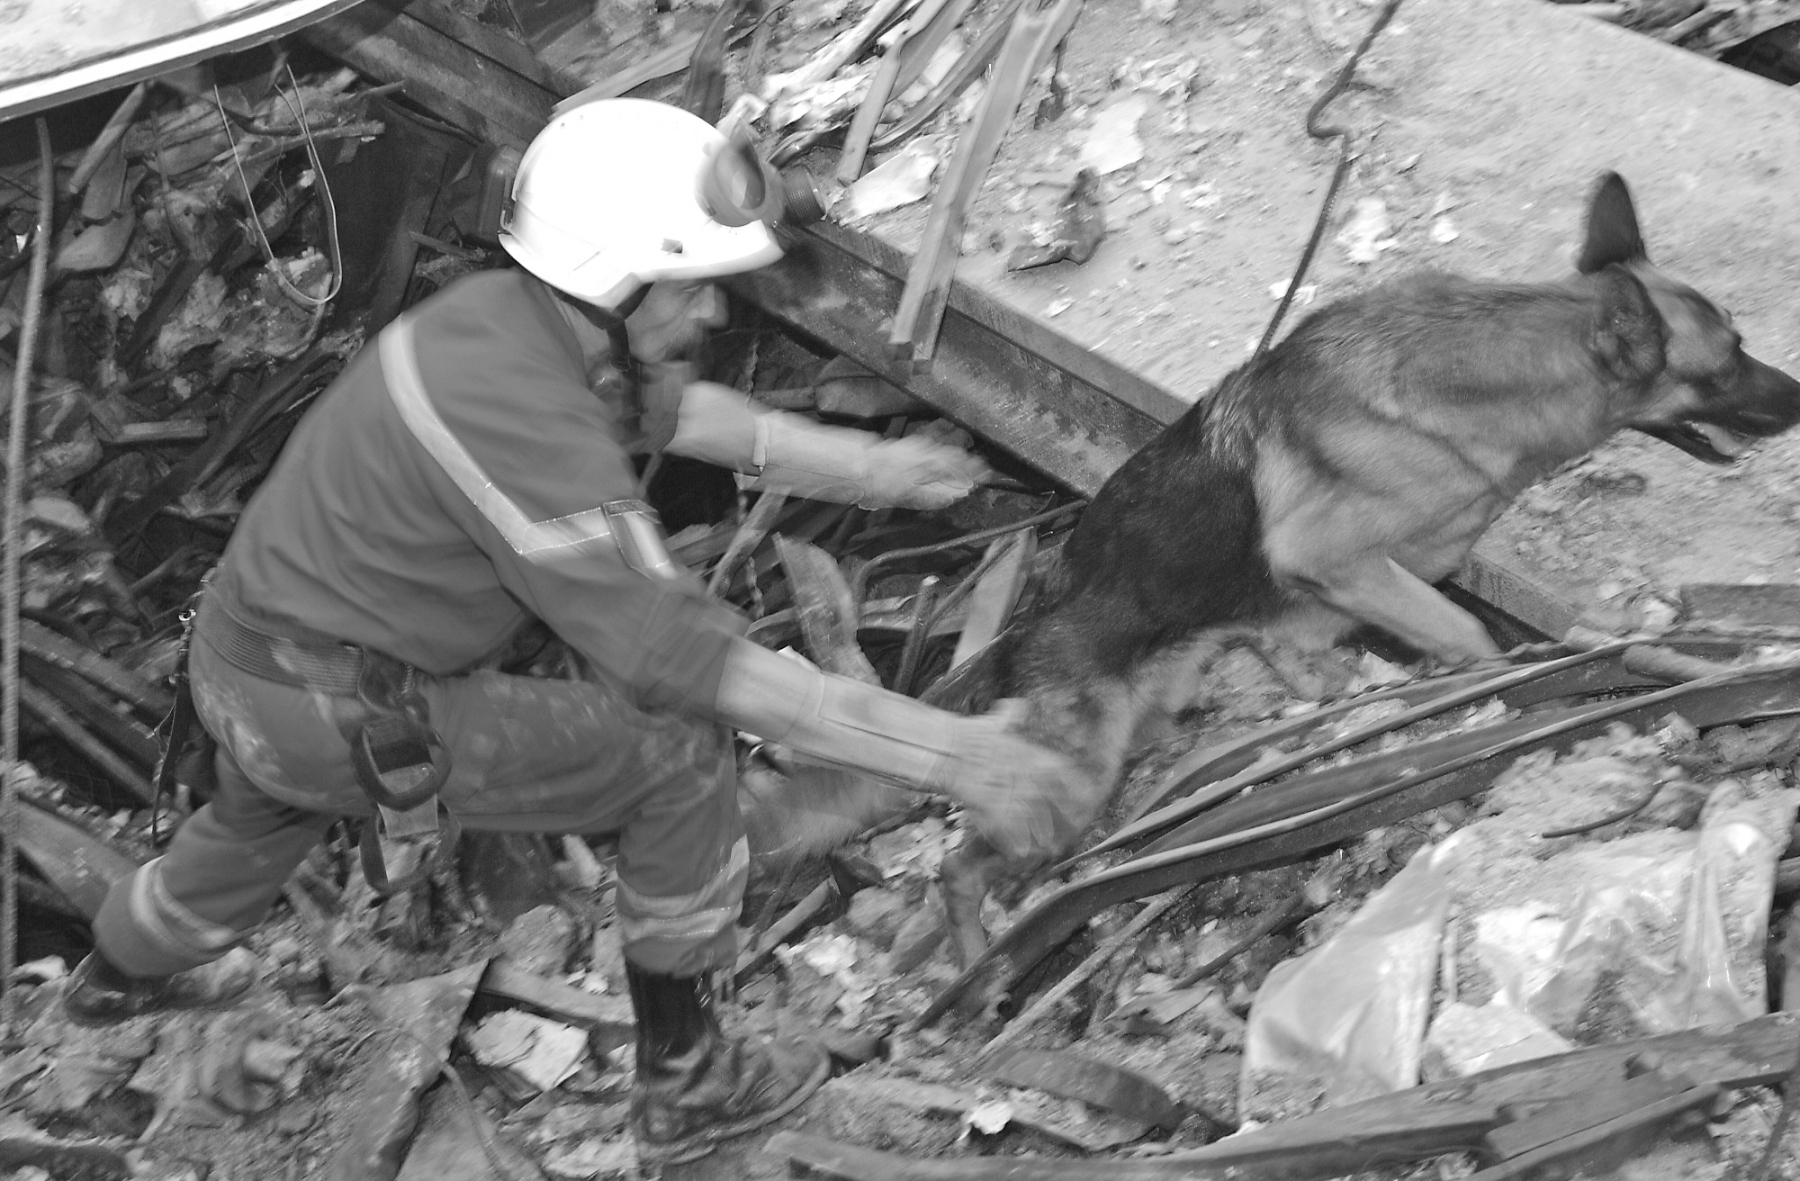 New York, NY, September 24, 2001 -- A memeber of the French Urban Search and Rescue Task Force works with his Alsation to uncover survivors at the site of the collapsed world Trade Center.  Photo by Andrea Booher/ FEMA News Photo